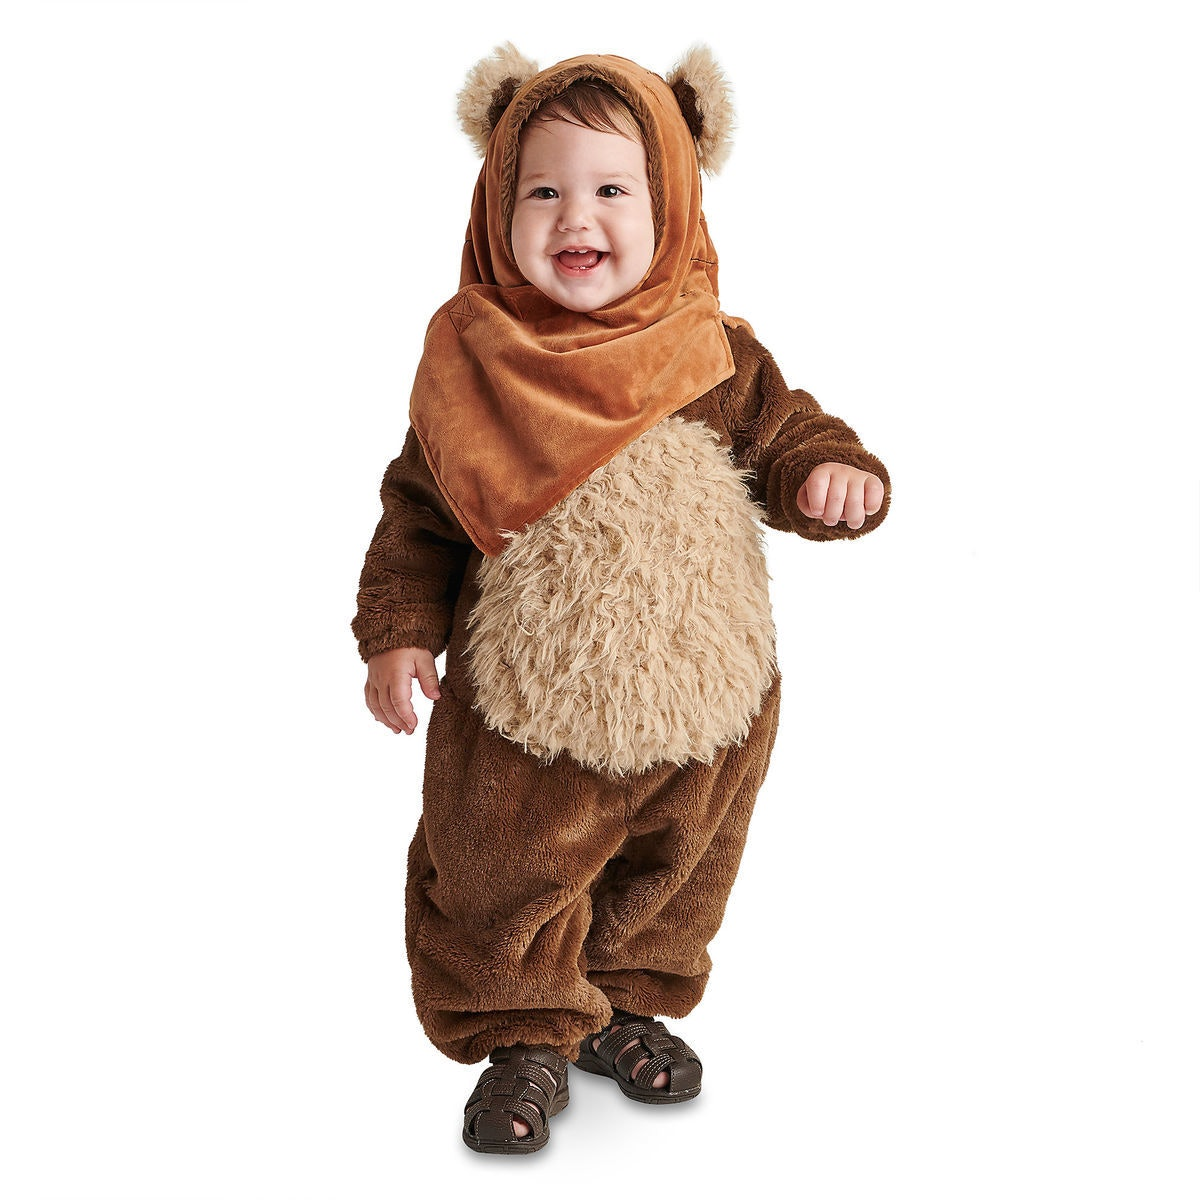 355a3c155 15 Cutest Baby Halloween Costumes Of All Time